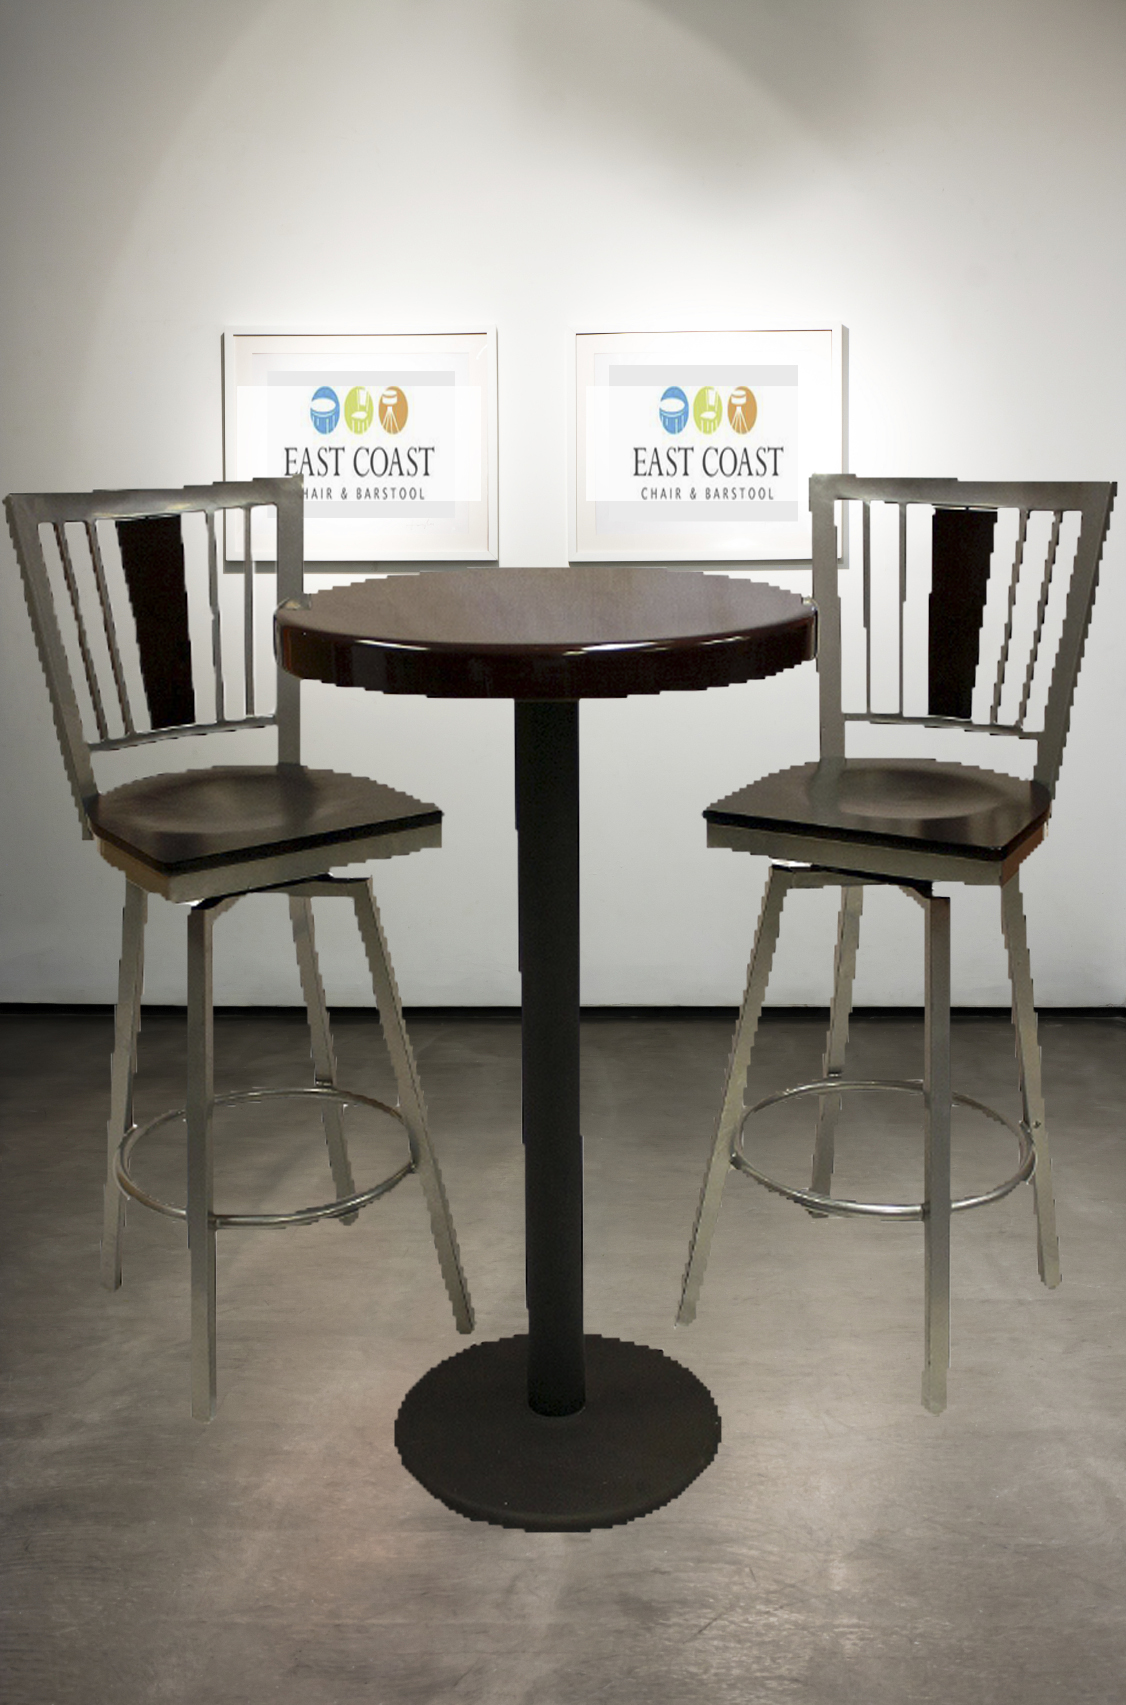 East Coast Chair U0026 Barstool Blog